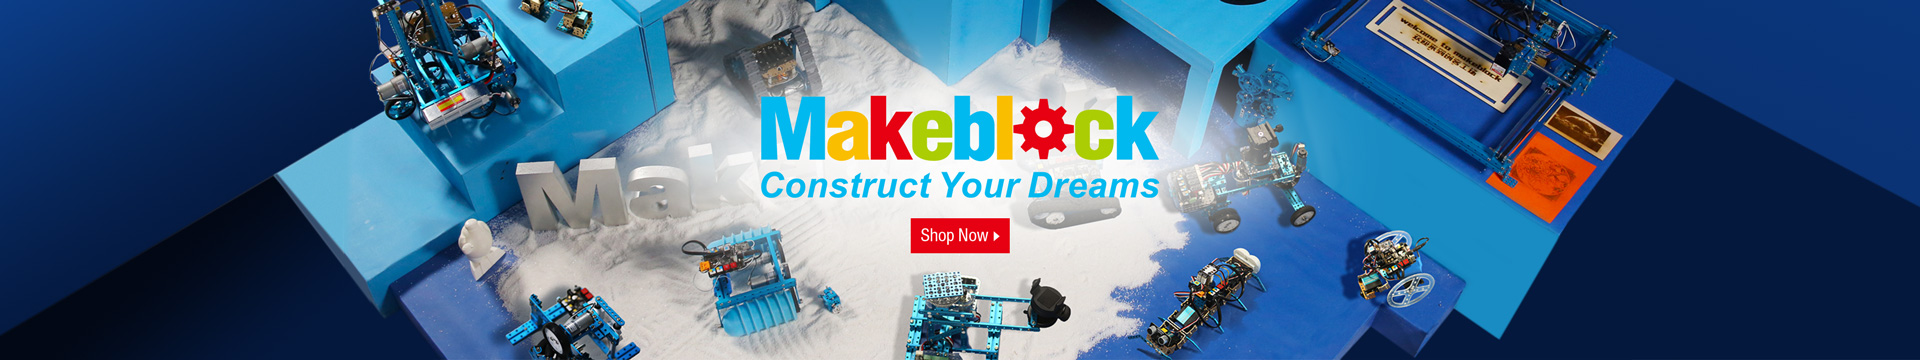 Construct your dreams